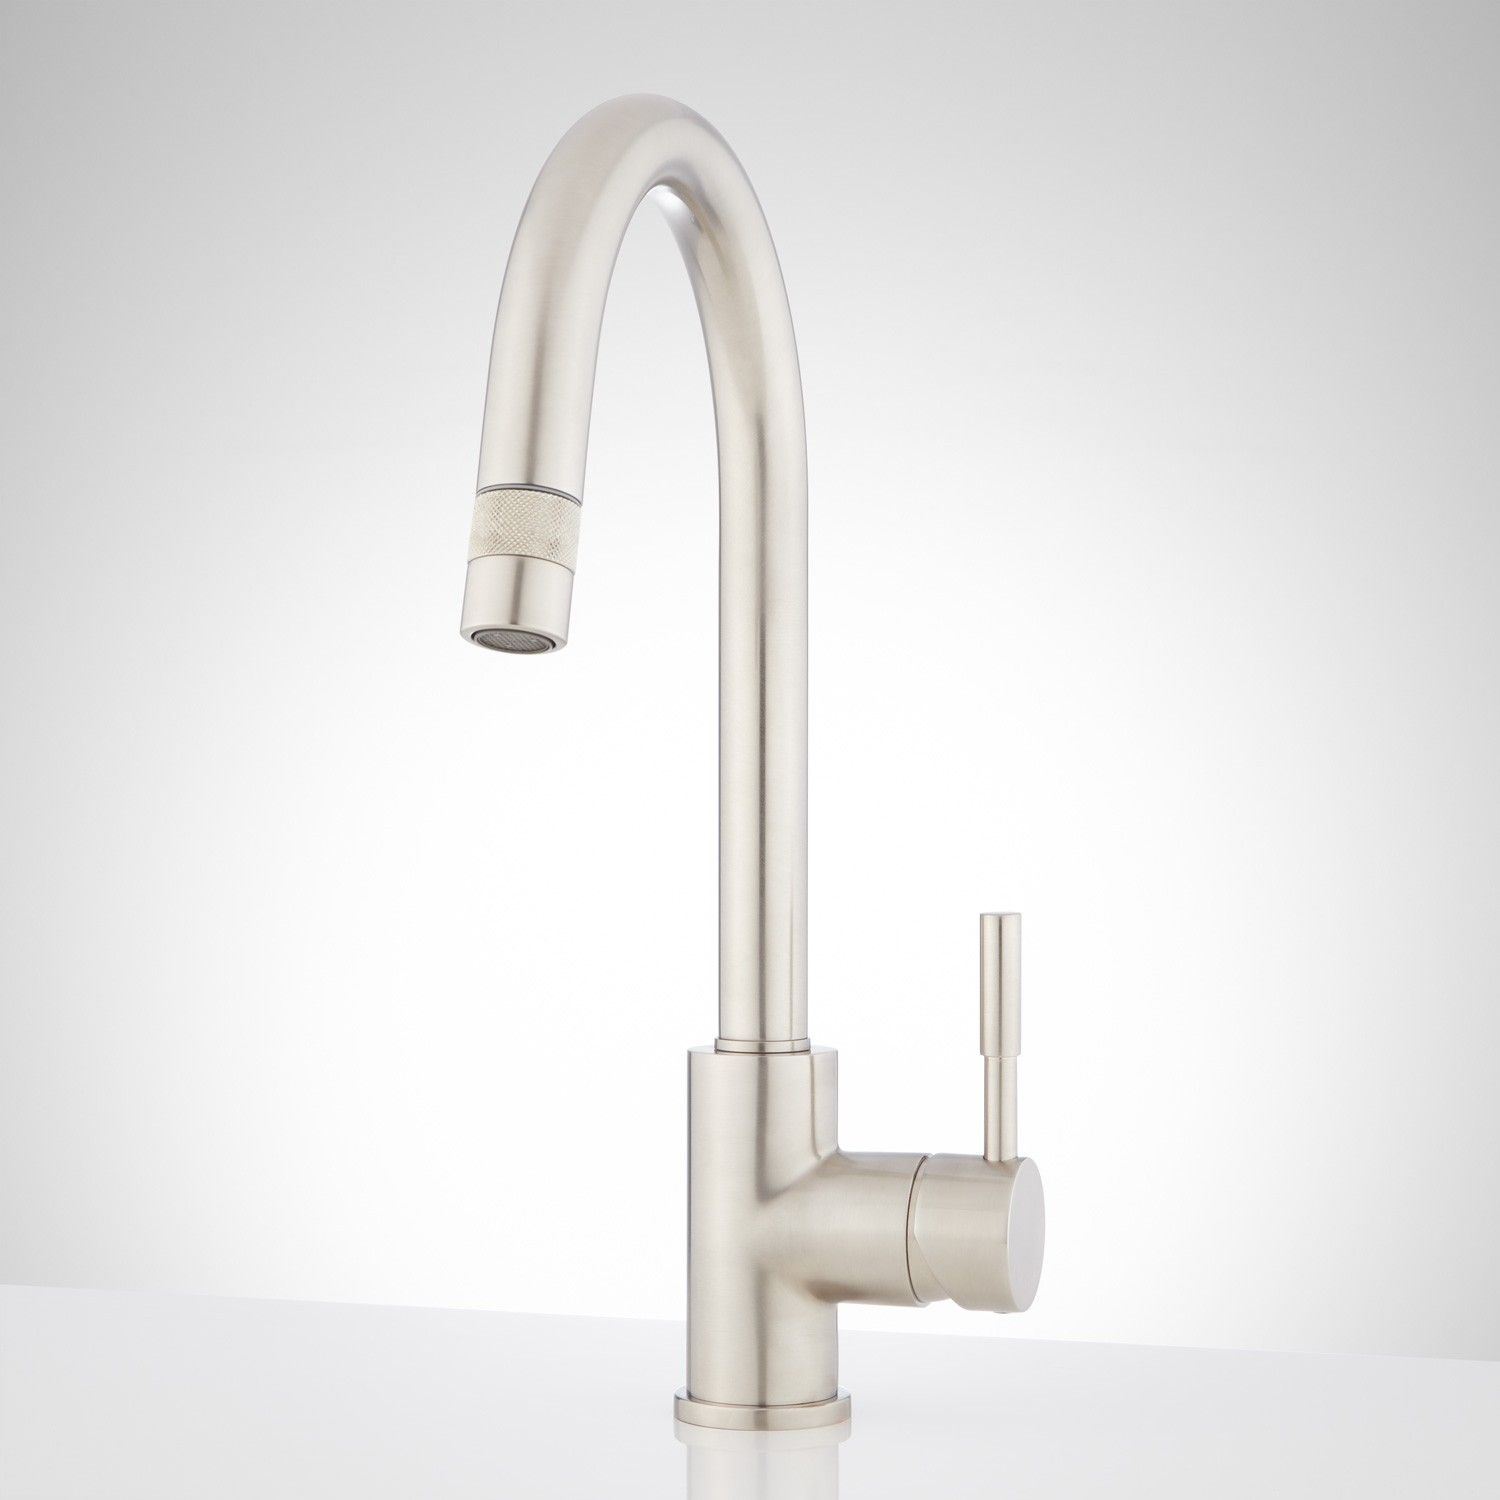 Cooley Single Hole Kitchen Faucet With Pull Down Spray Single